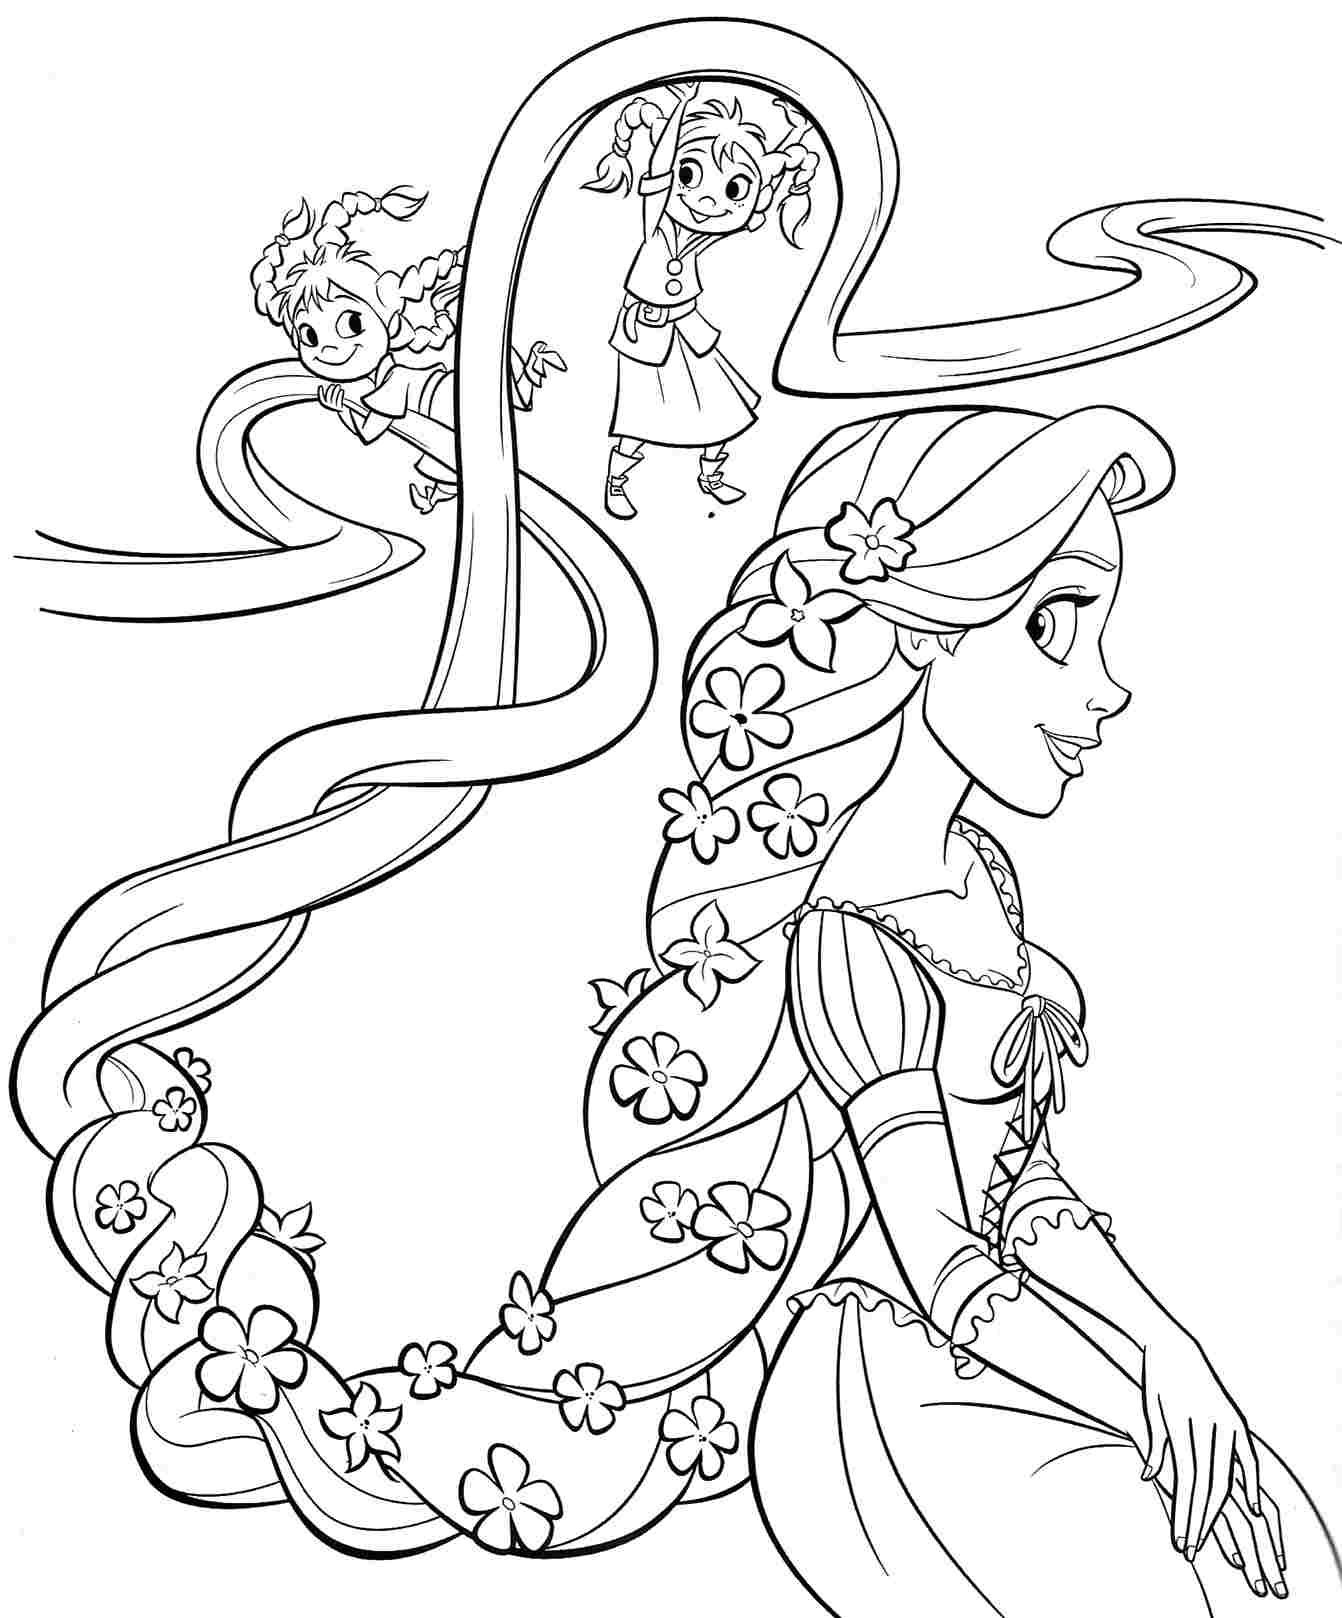 printable free disney princess rapunzel coloring sheets